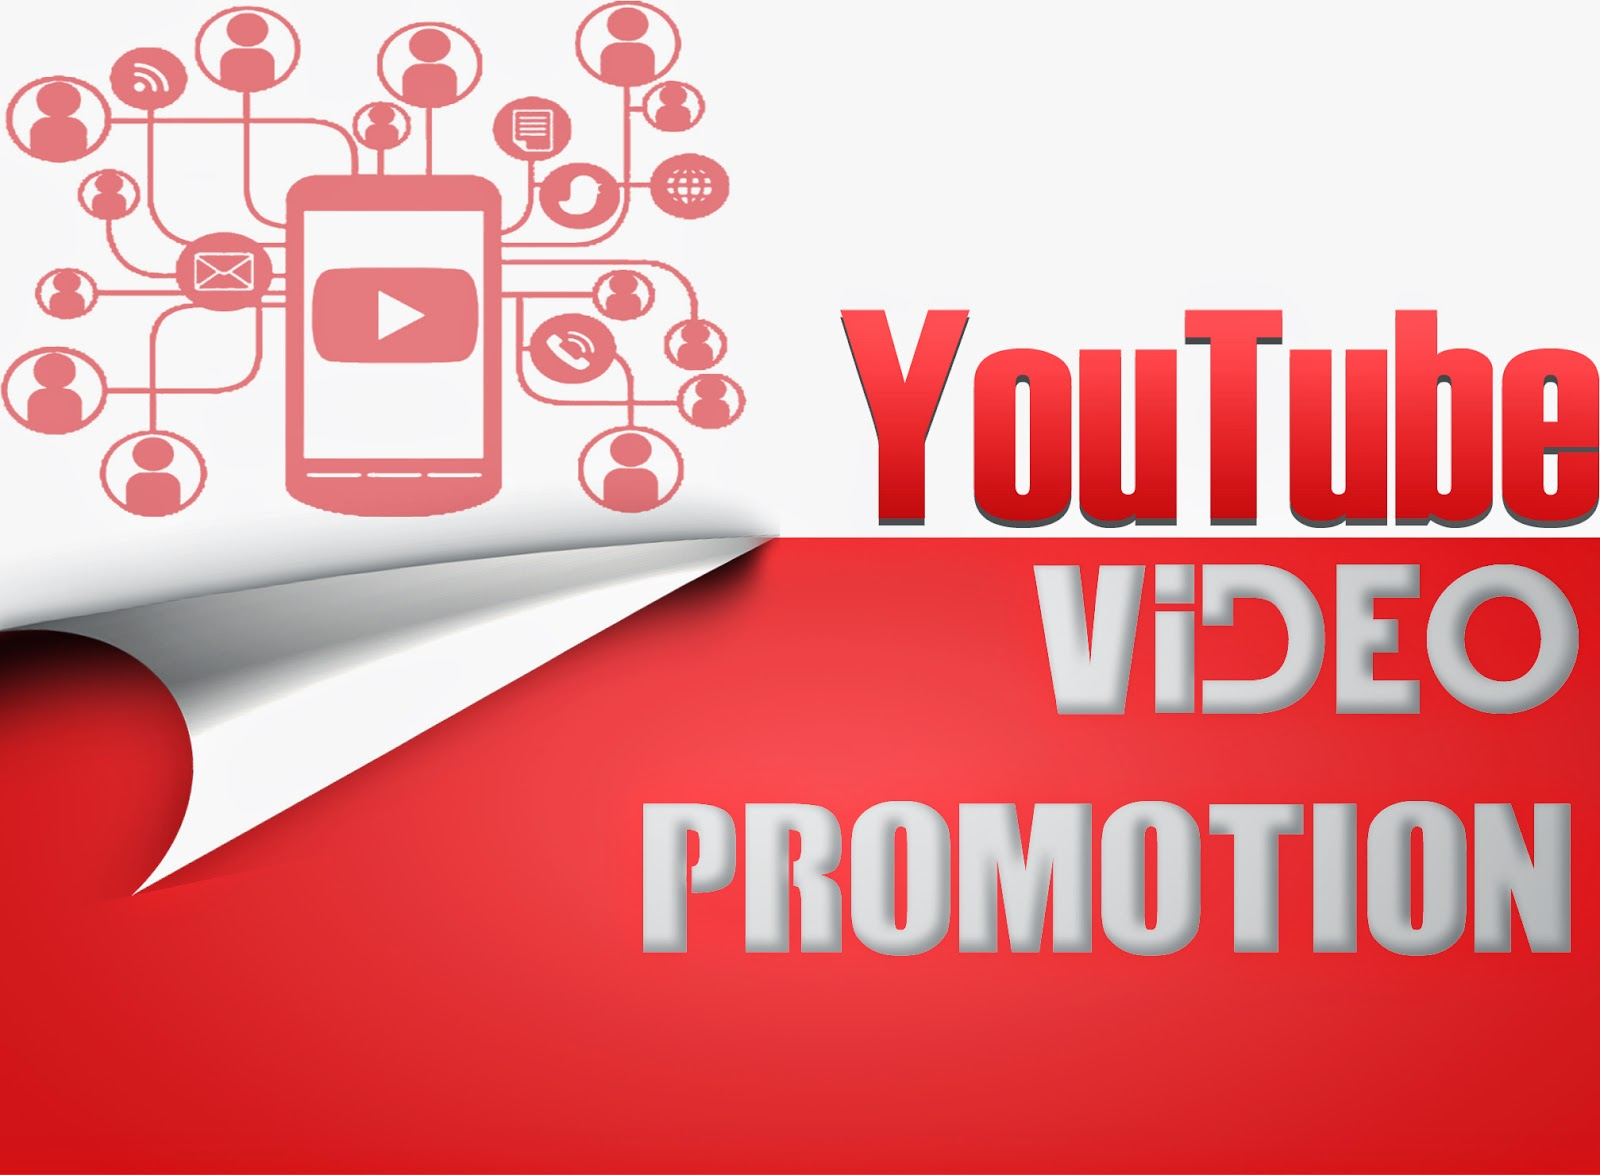 provide you video Promotion services